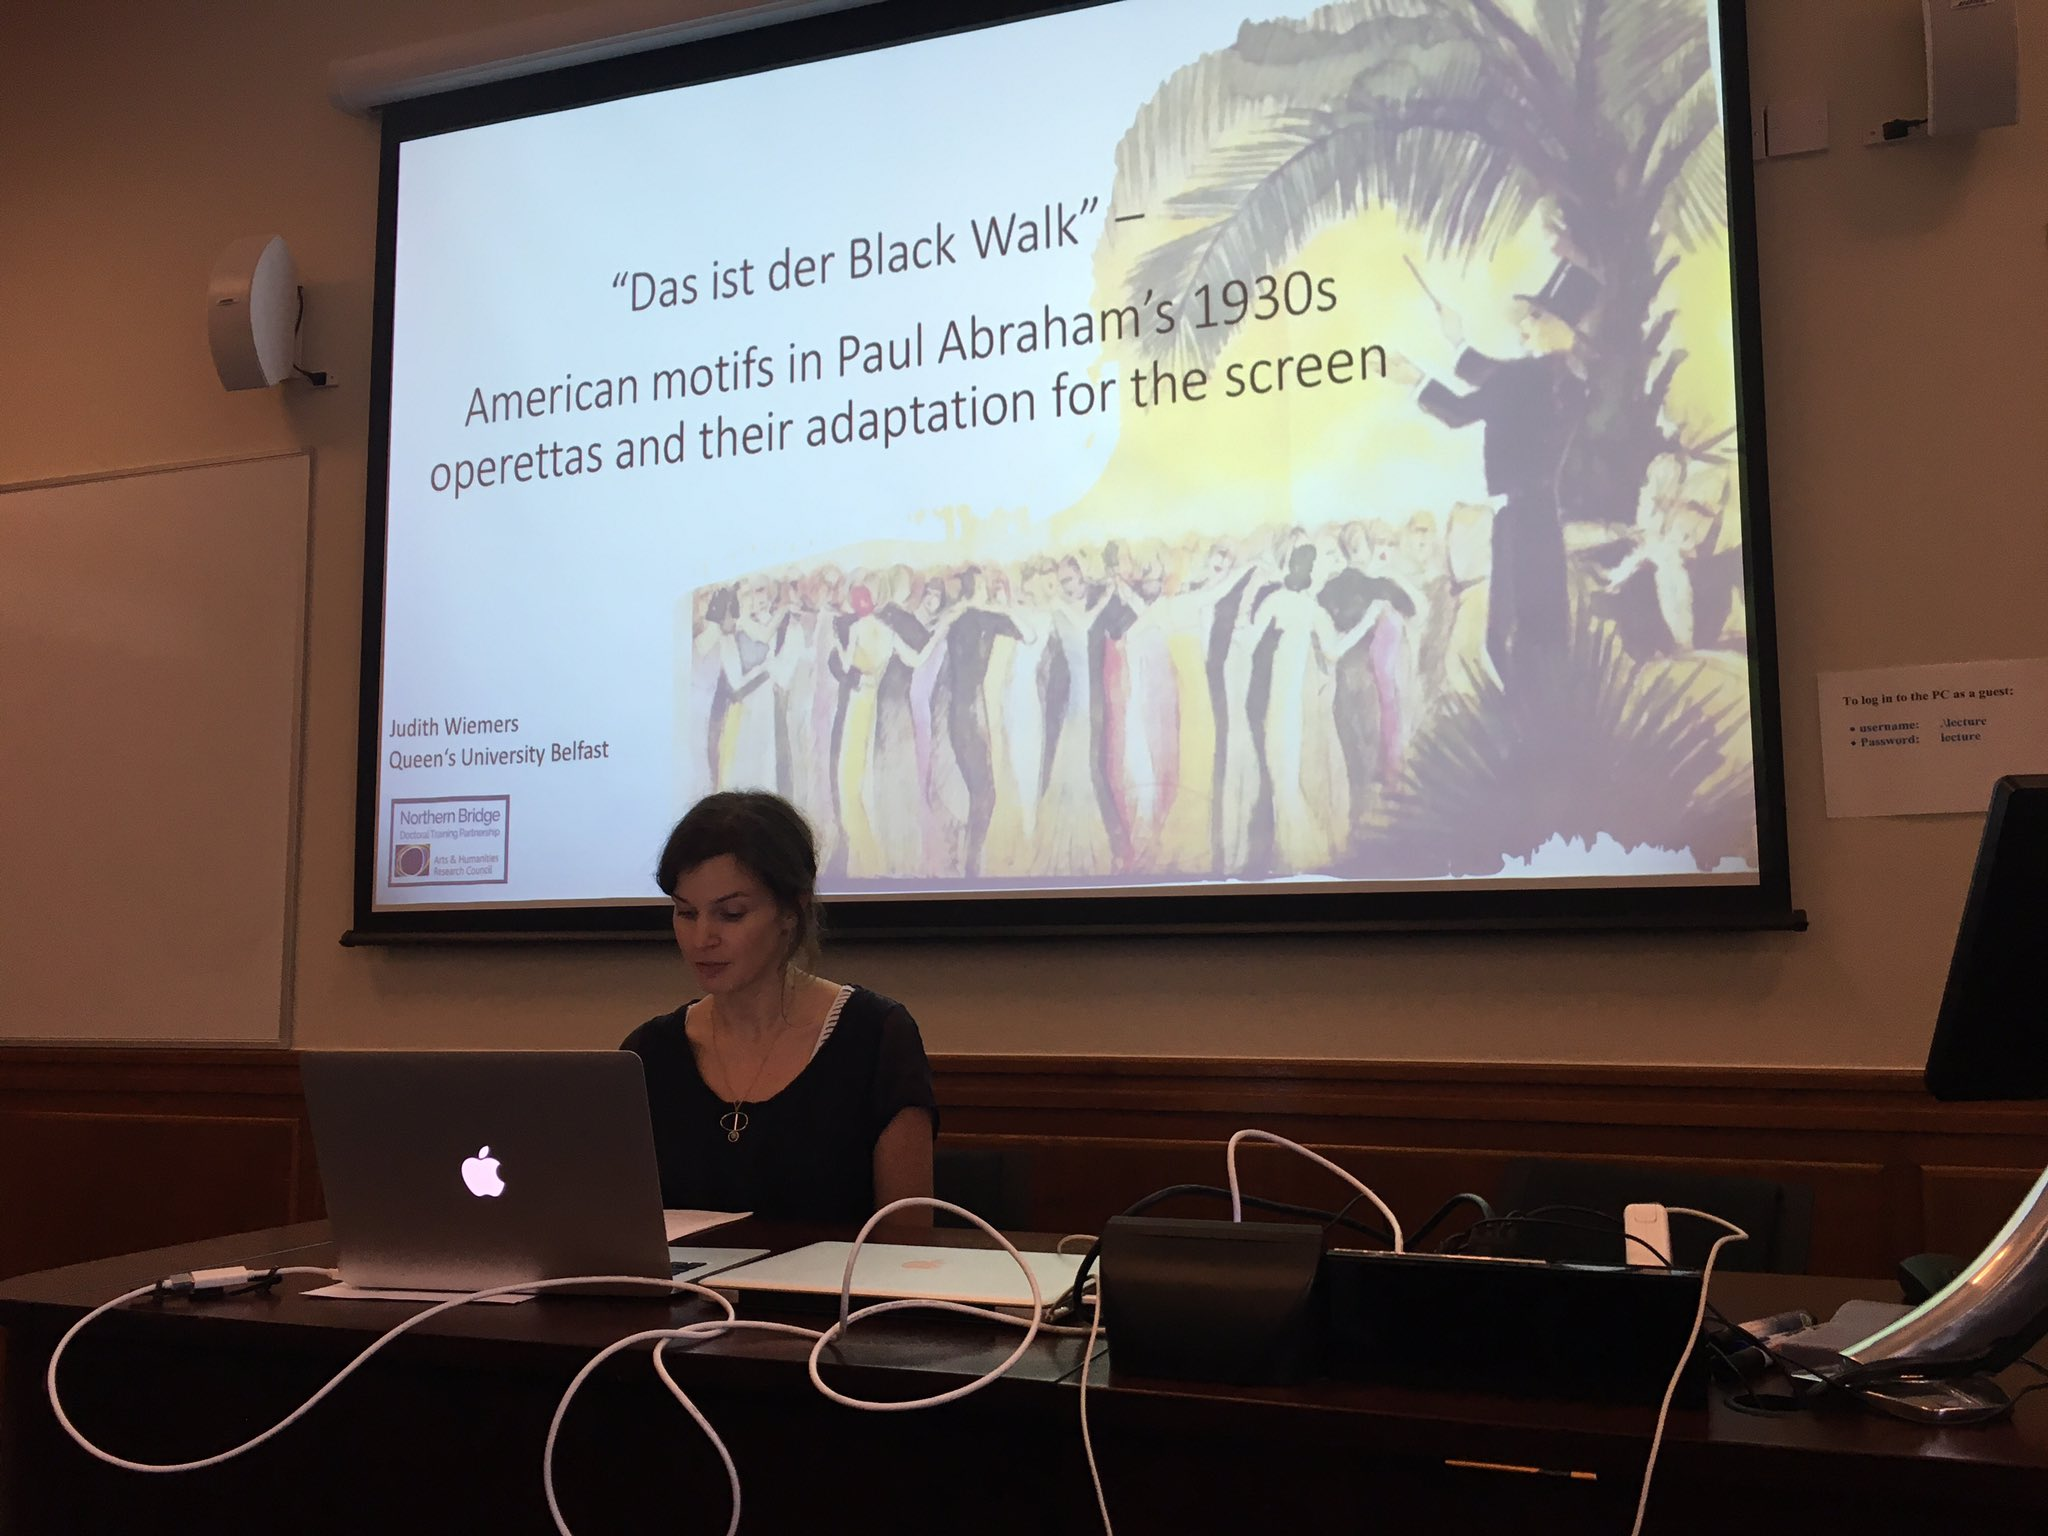 Judith Wiemers getting ready to present her talk on Abraham. (Photo: Judith Wiemers)